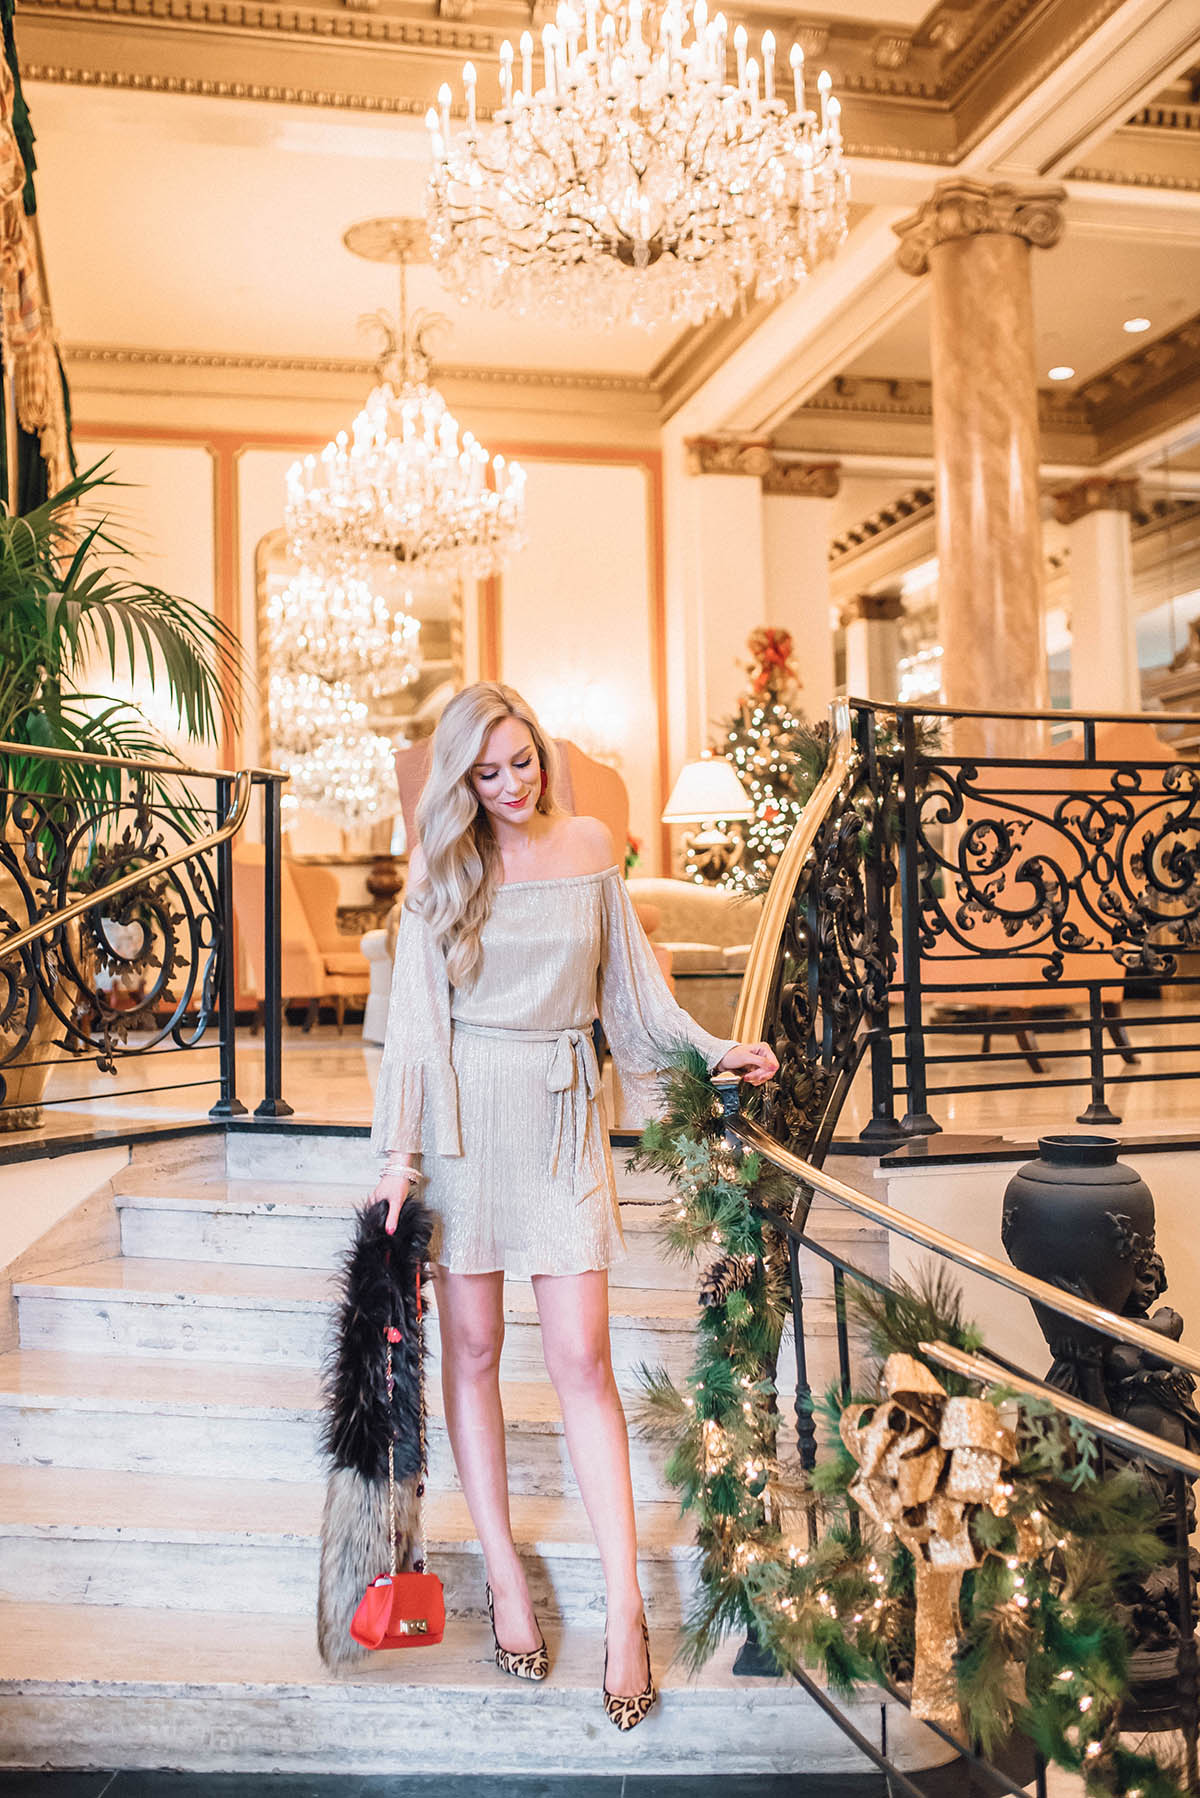 Le Pavillion Hotel | Where to Stay in New Orleans